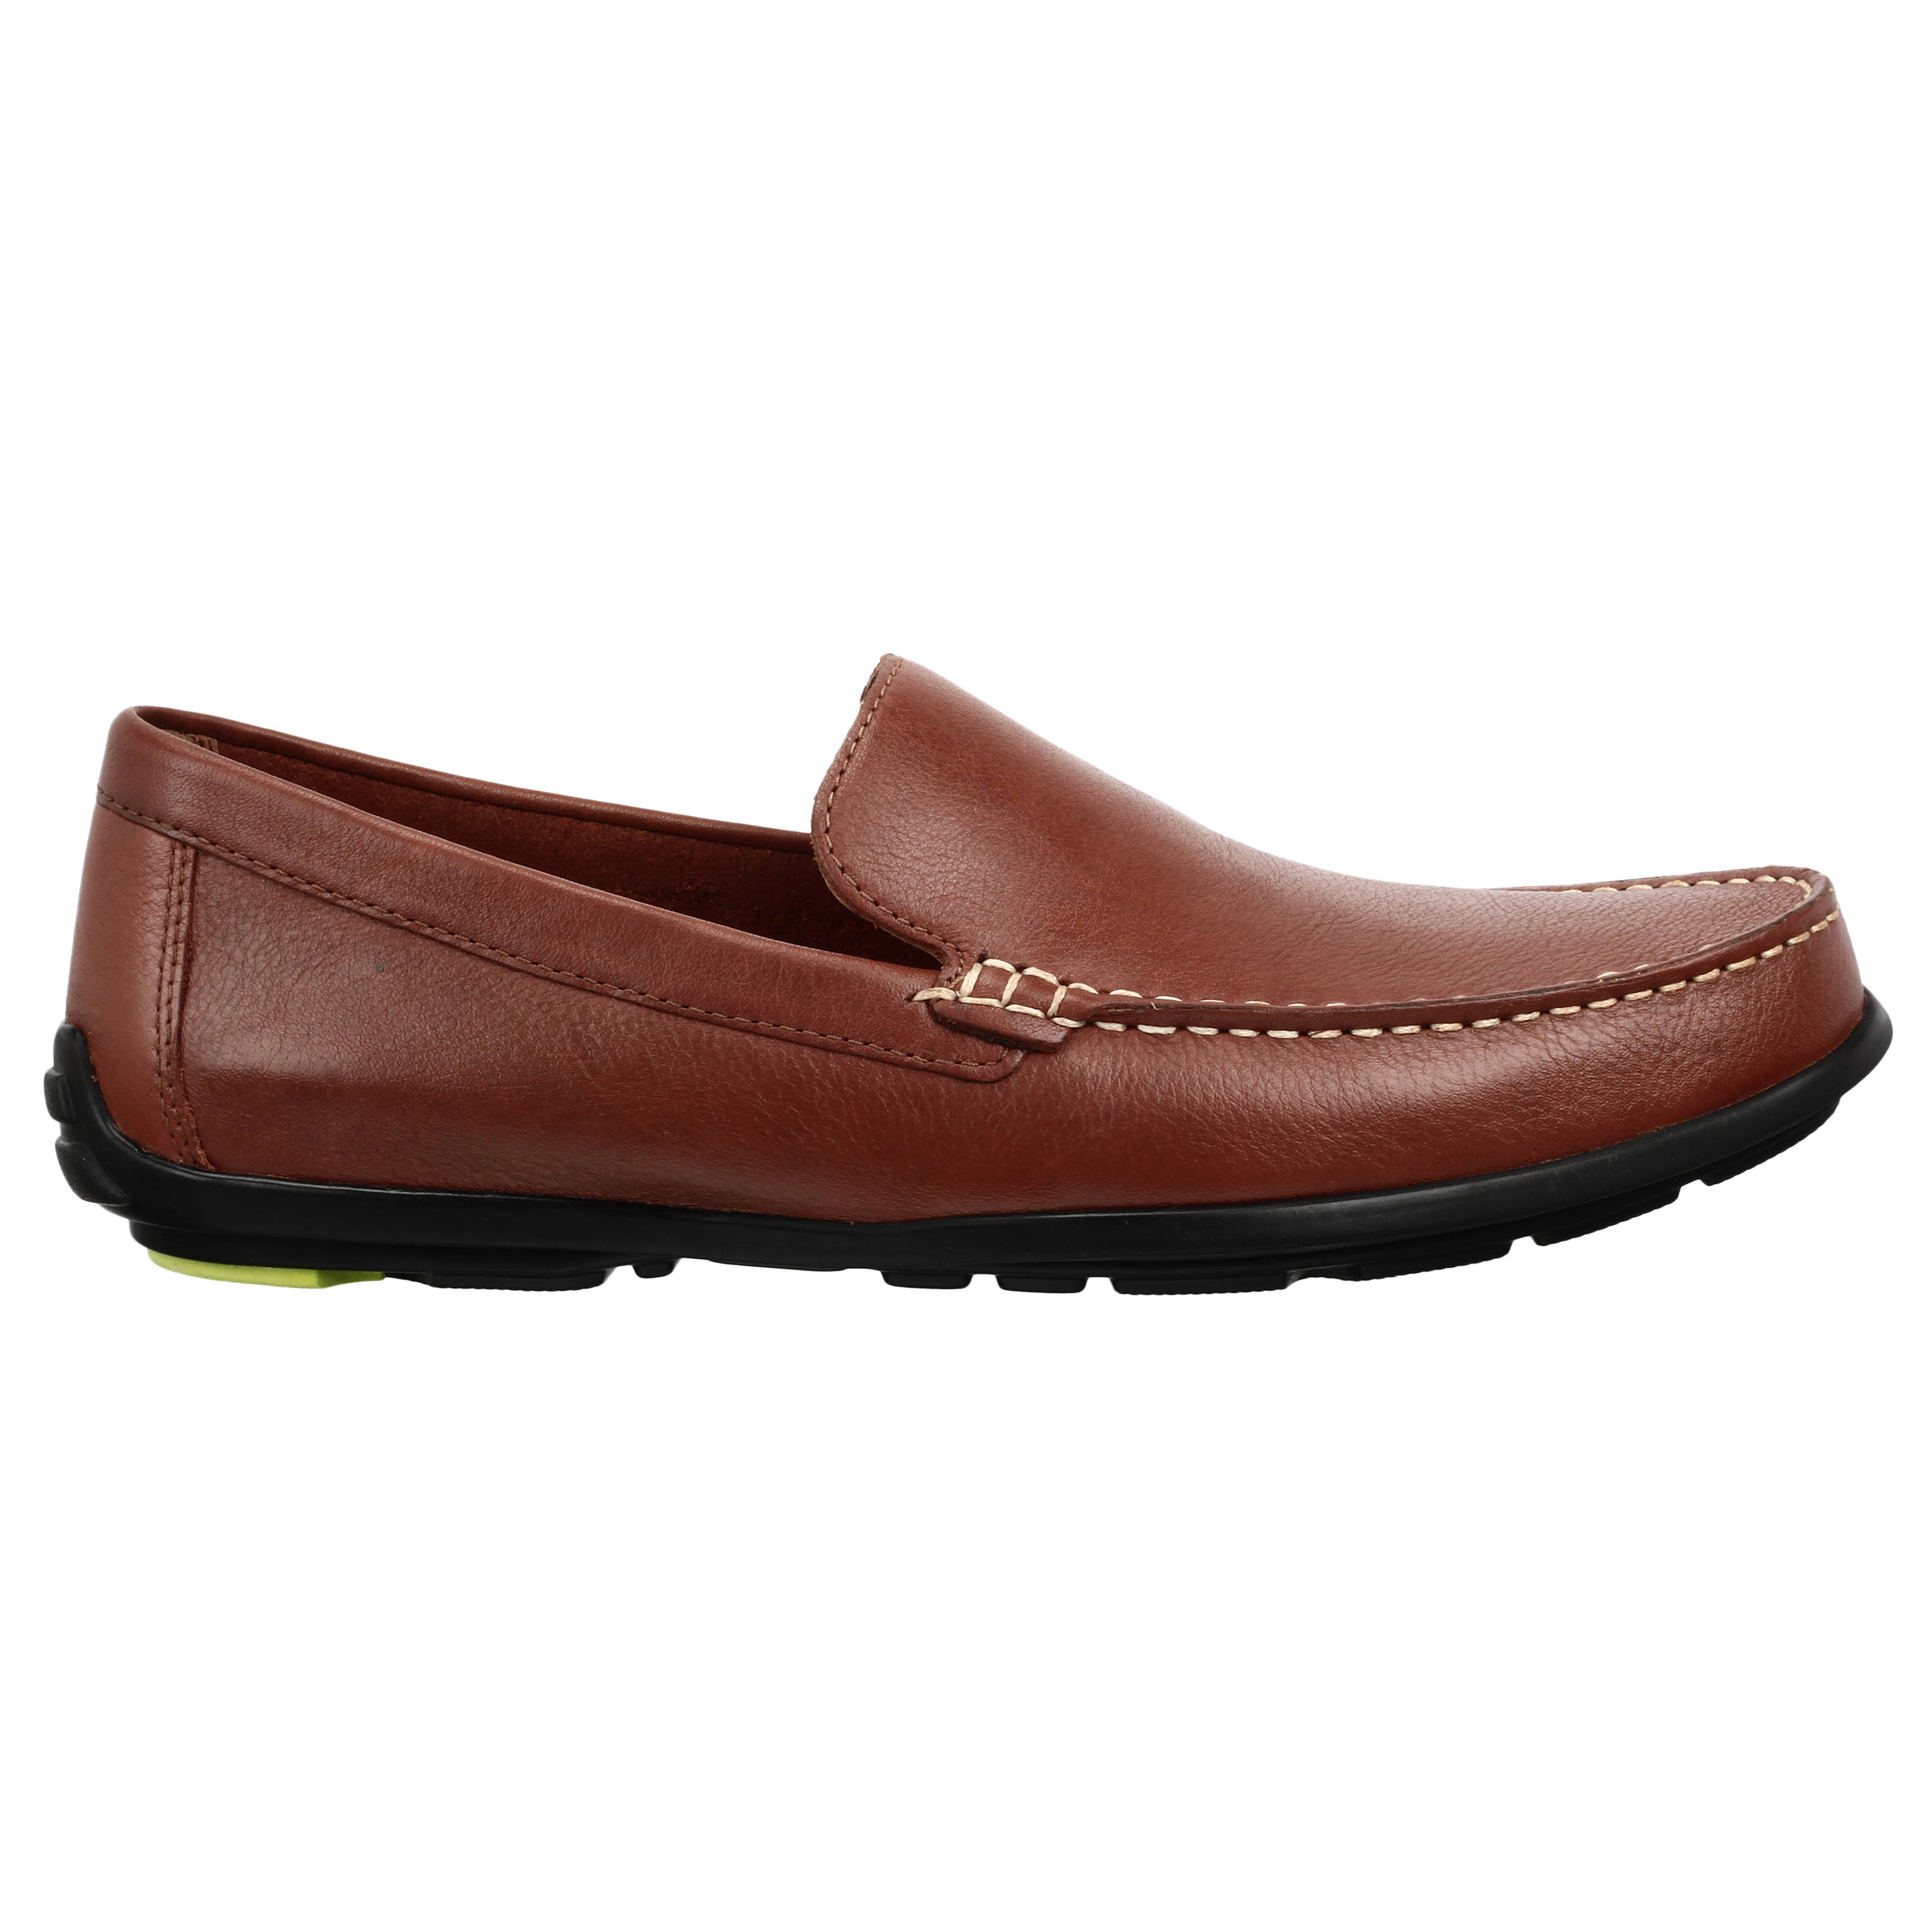 Clarks | Corson Loafer Tan Leather Loafers